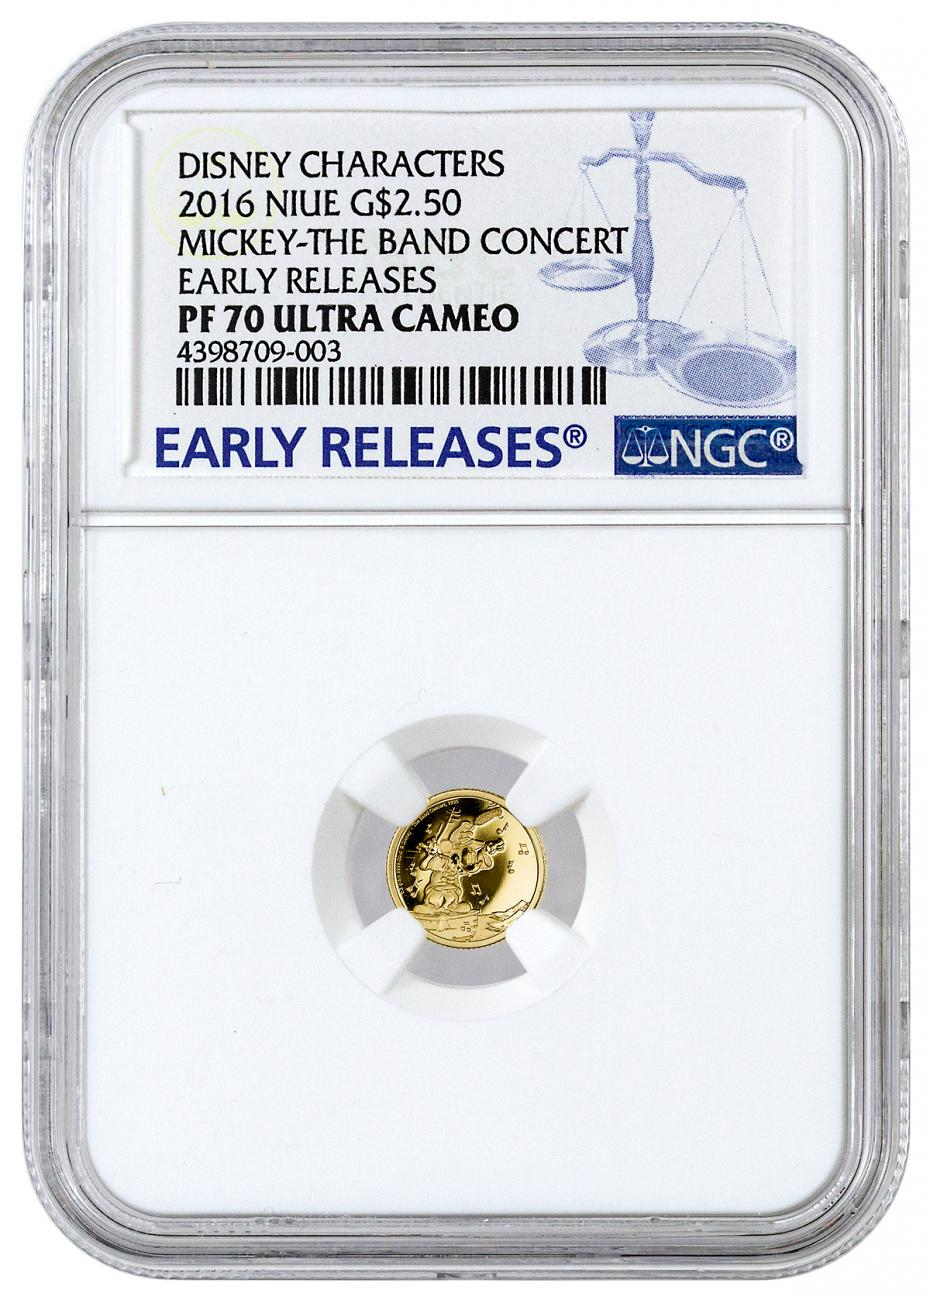 2016 Niue $2.5 0.5g Proof Gold Disney Mickey Band Concert - NGC PF70 UC Early Releases